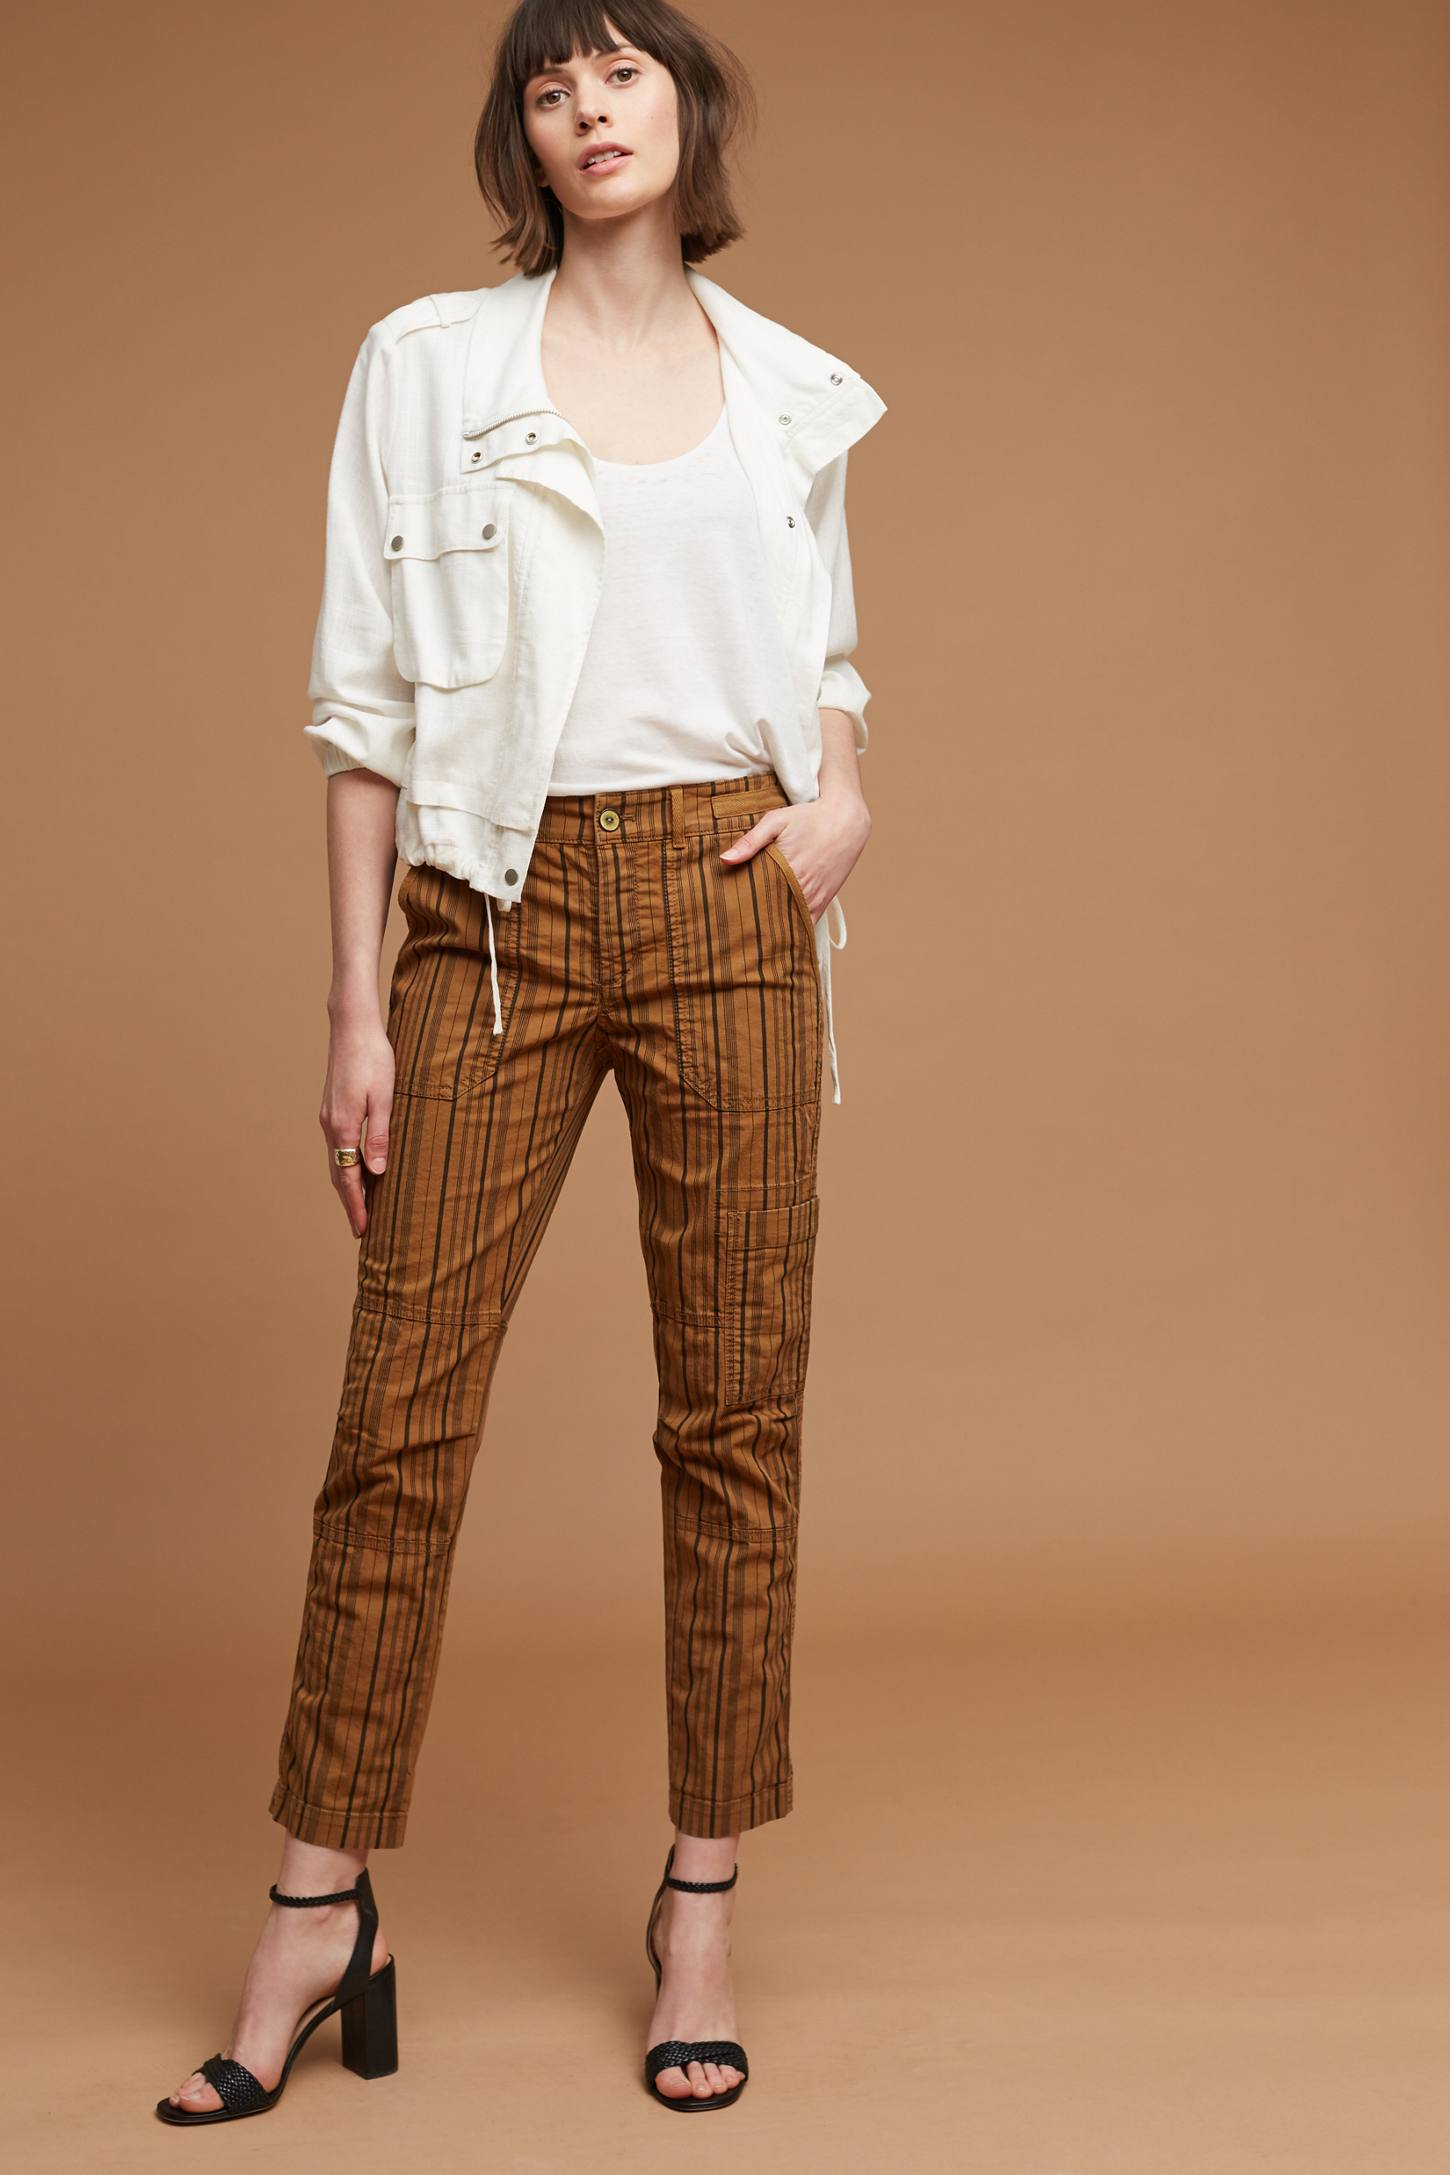 Slide View: 4: Wanderer Striped Cargo Pants